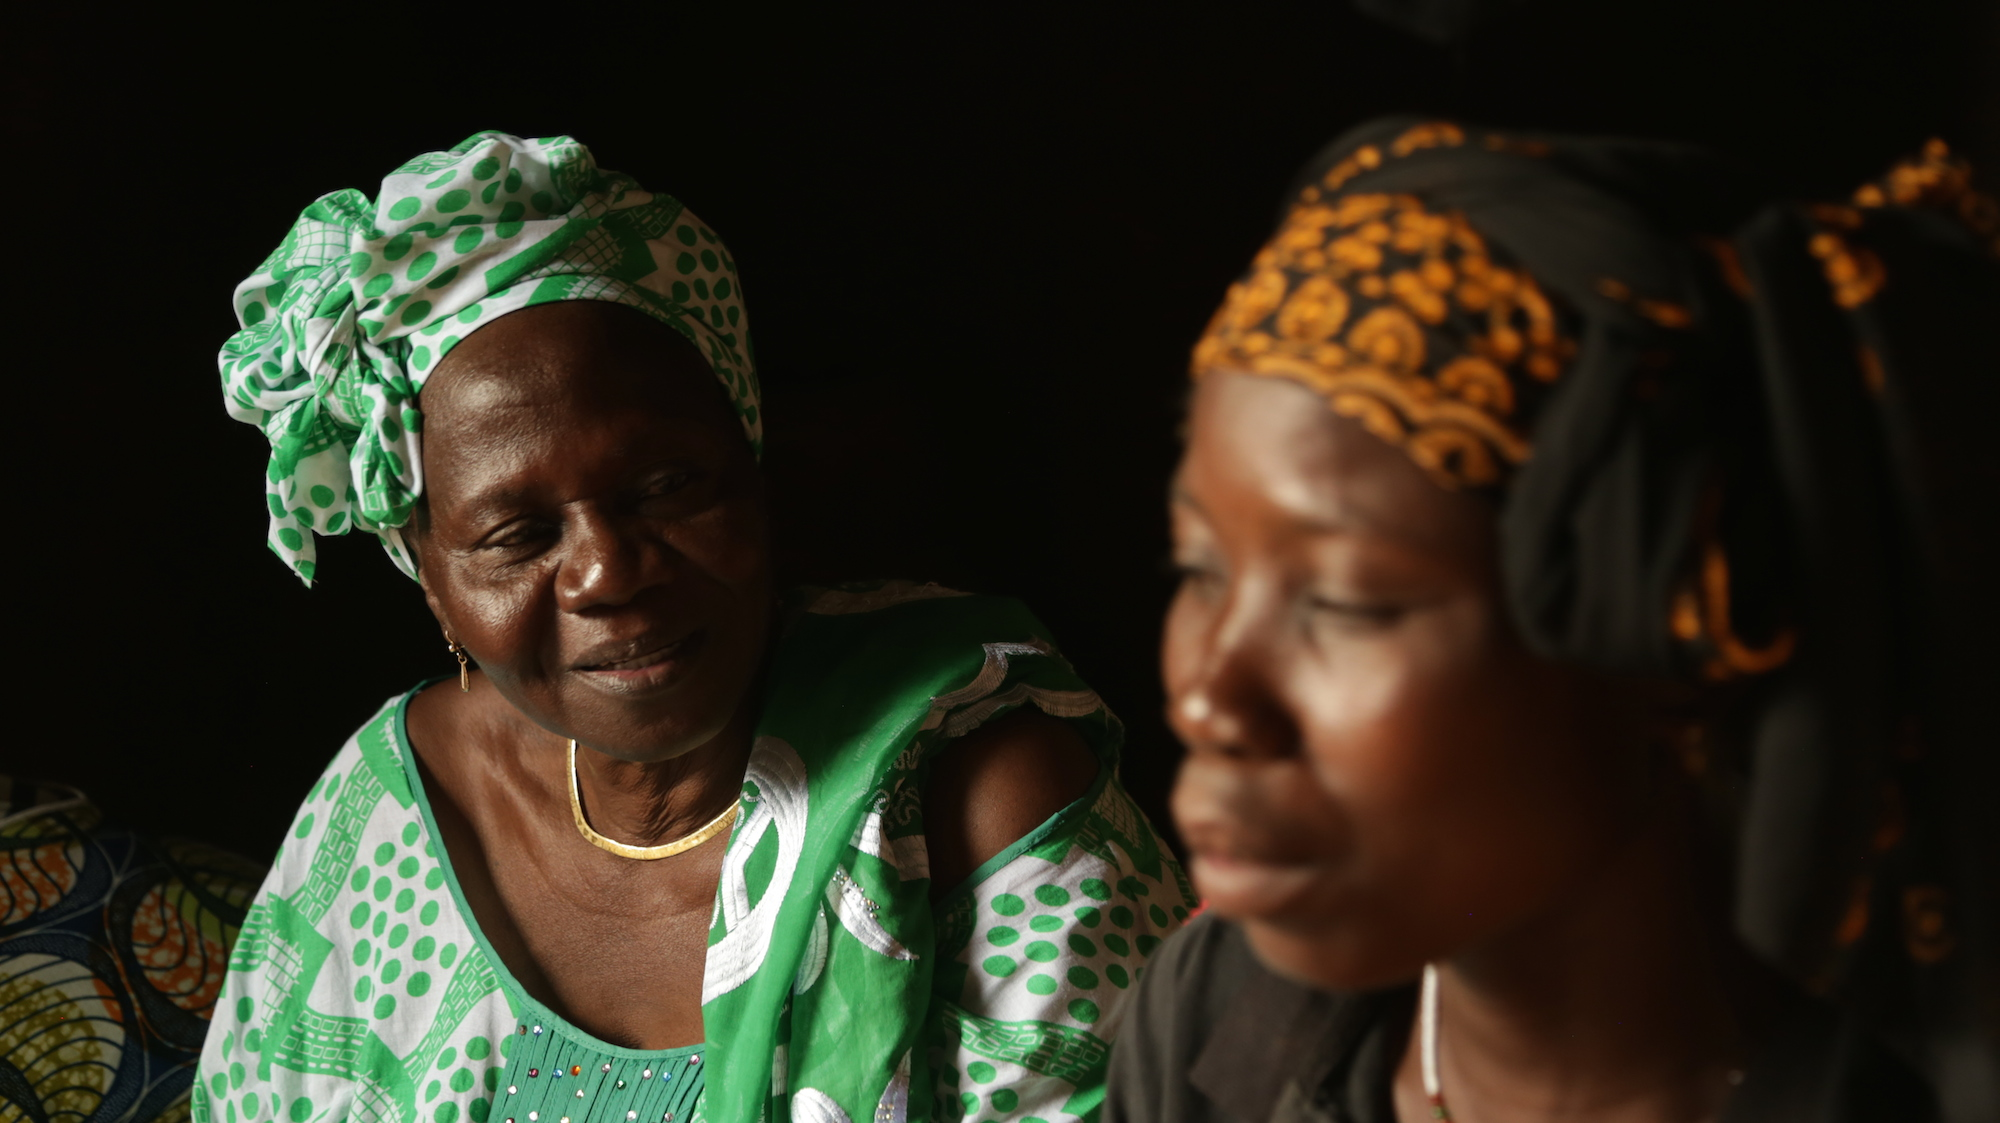 Women's rights activist Bibata Ouedraogo exchanges with Abibou Sanga during a session on sexual and reproductive rights in the village of Sissaba, Burkina Faso.